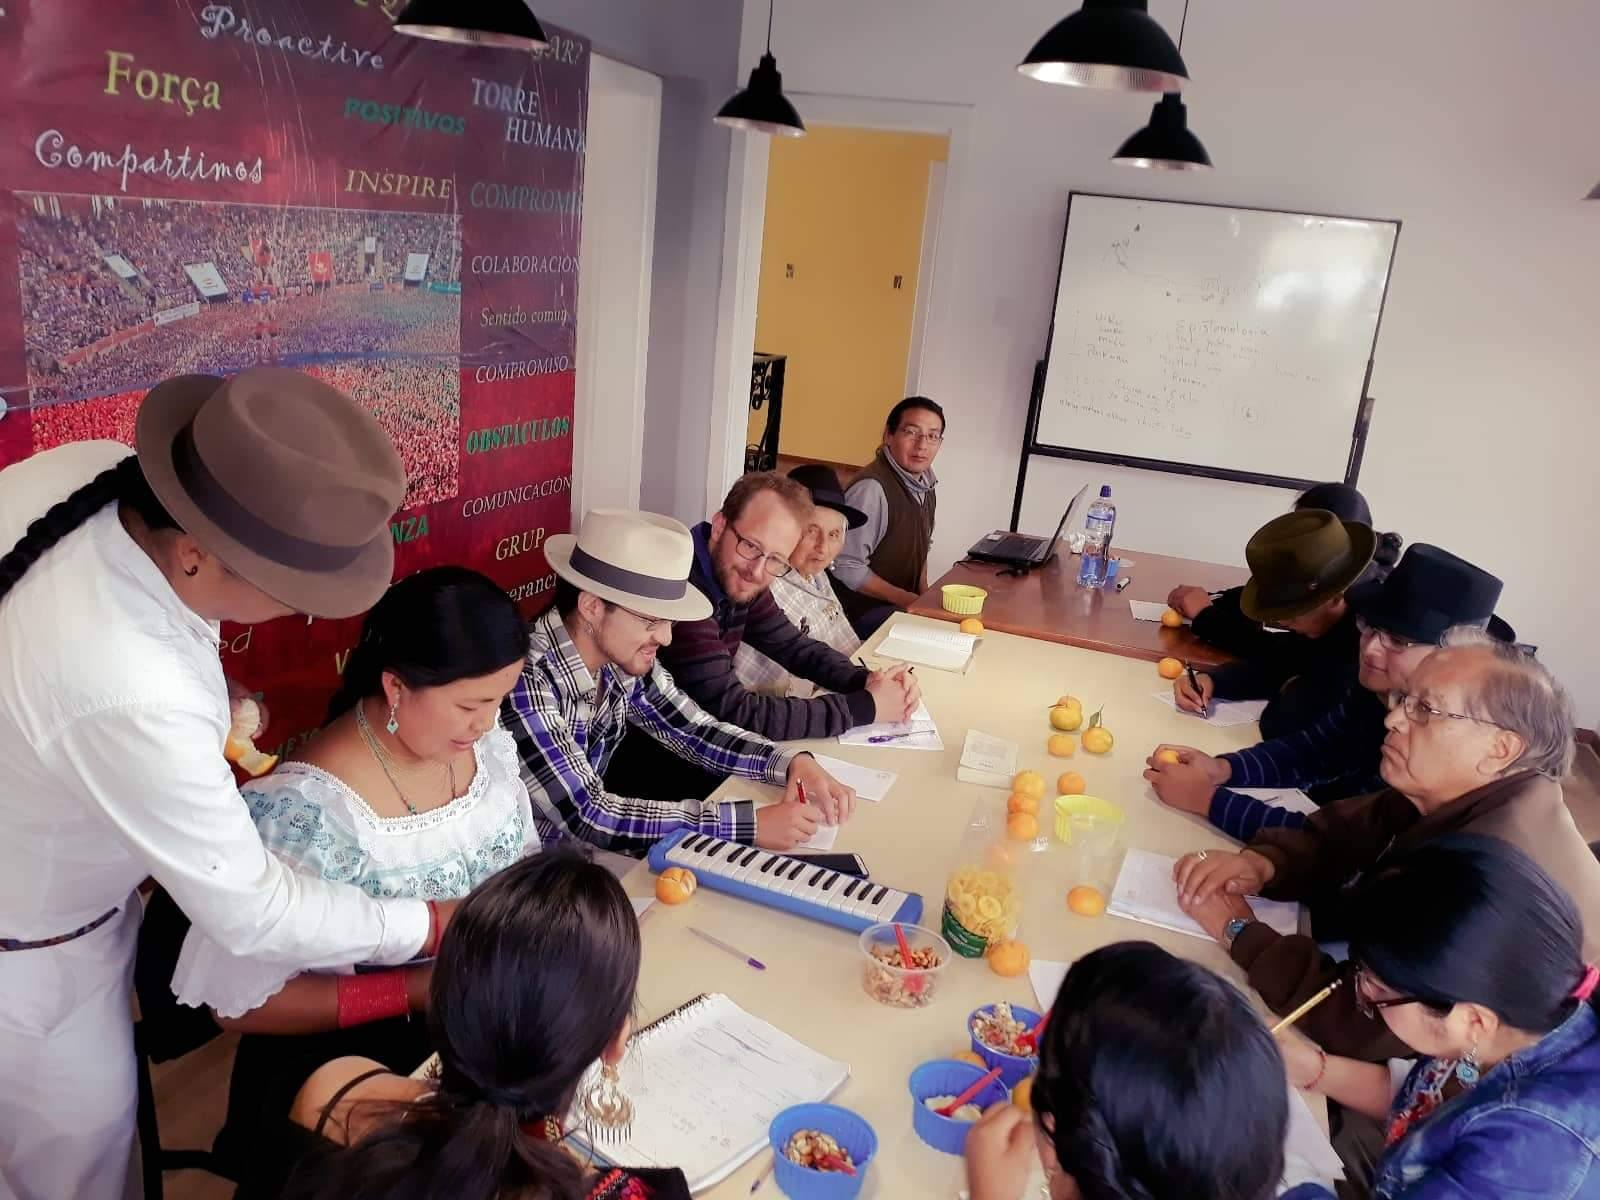 A group of students studying quichua, one of the ancestral languages of Ecuador. Submitted image, used with permission.